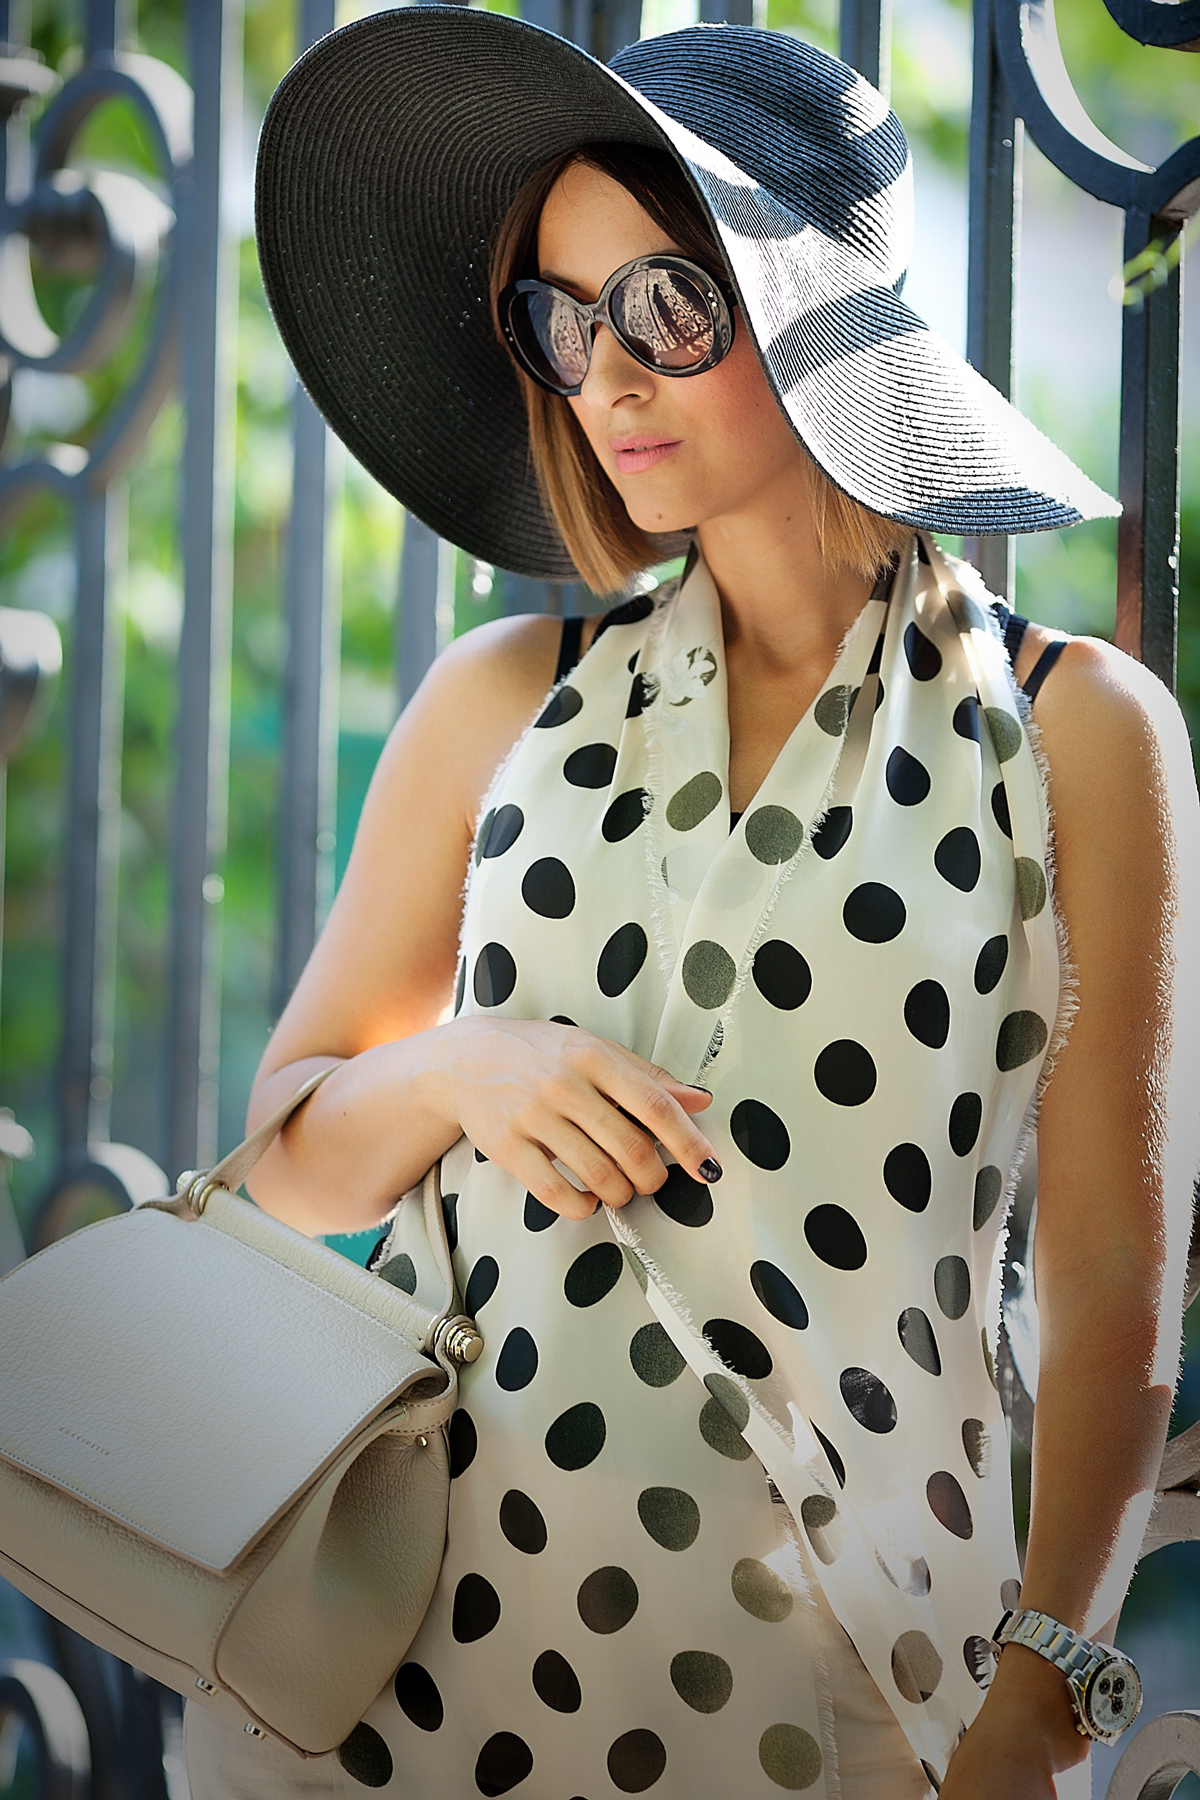 floppy-hat-outfit-galant-girl